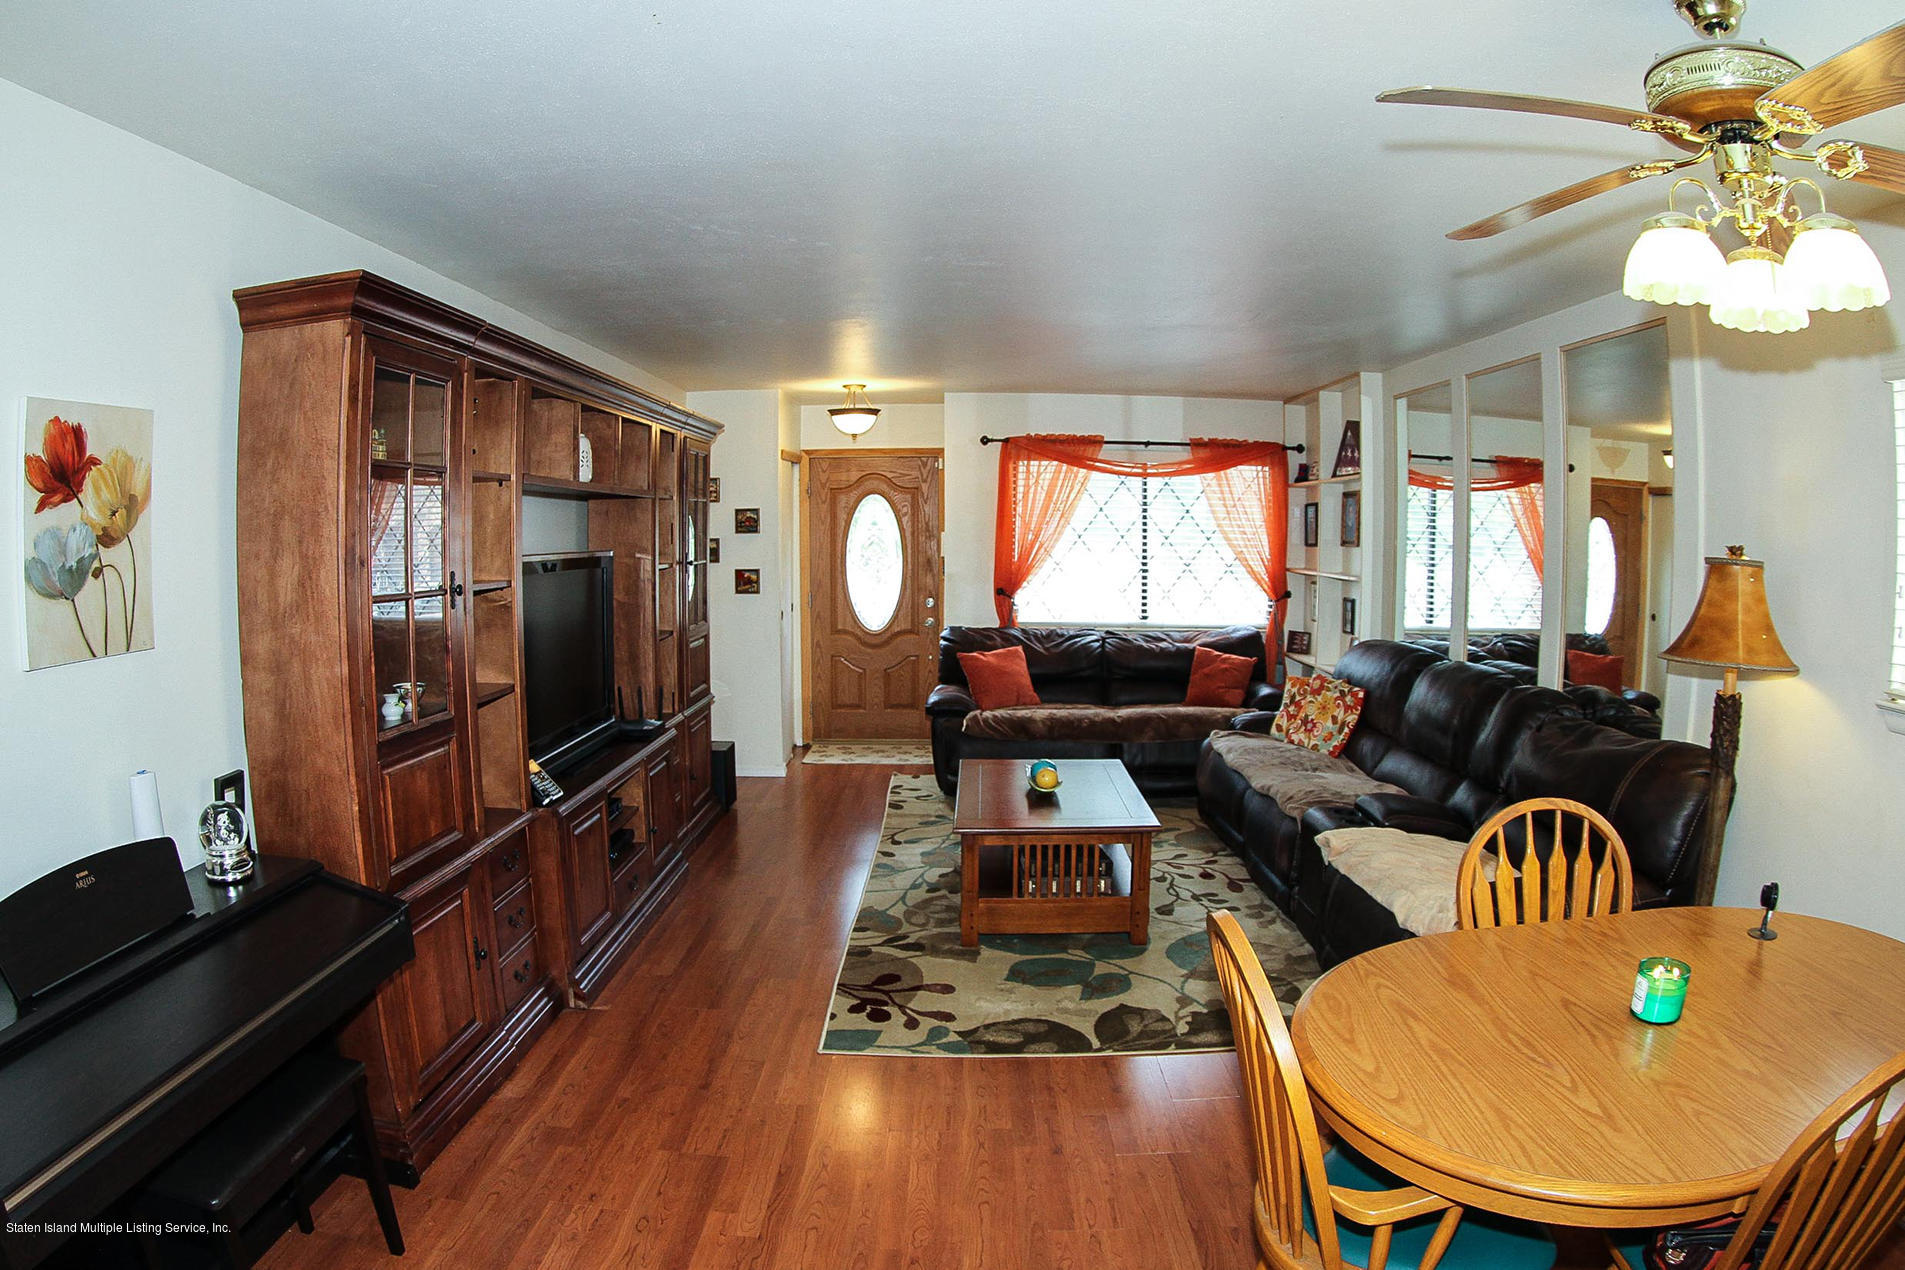 Single Family - Semi-Attached 972 Rensselaer Avenue  Staten Island, NY 10309, MLS-1134144-10